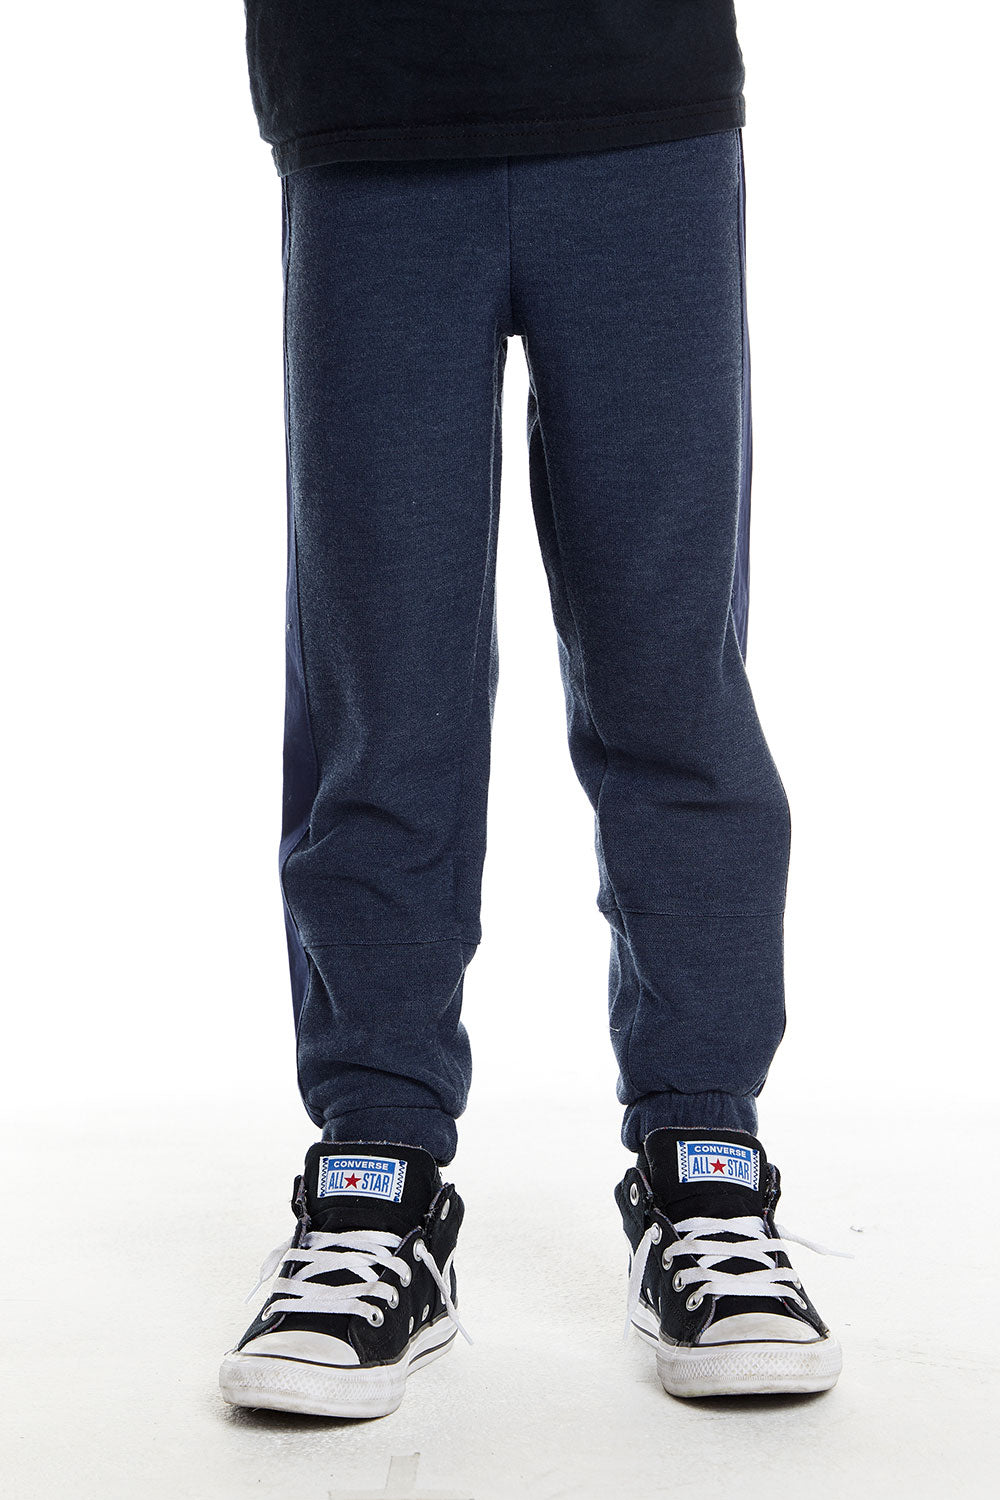 Boys Cozy Knit Poplin Blocked Track Pant in Avalon Blue